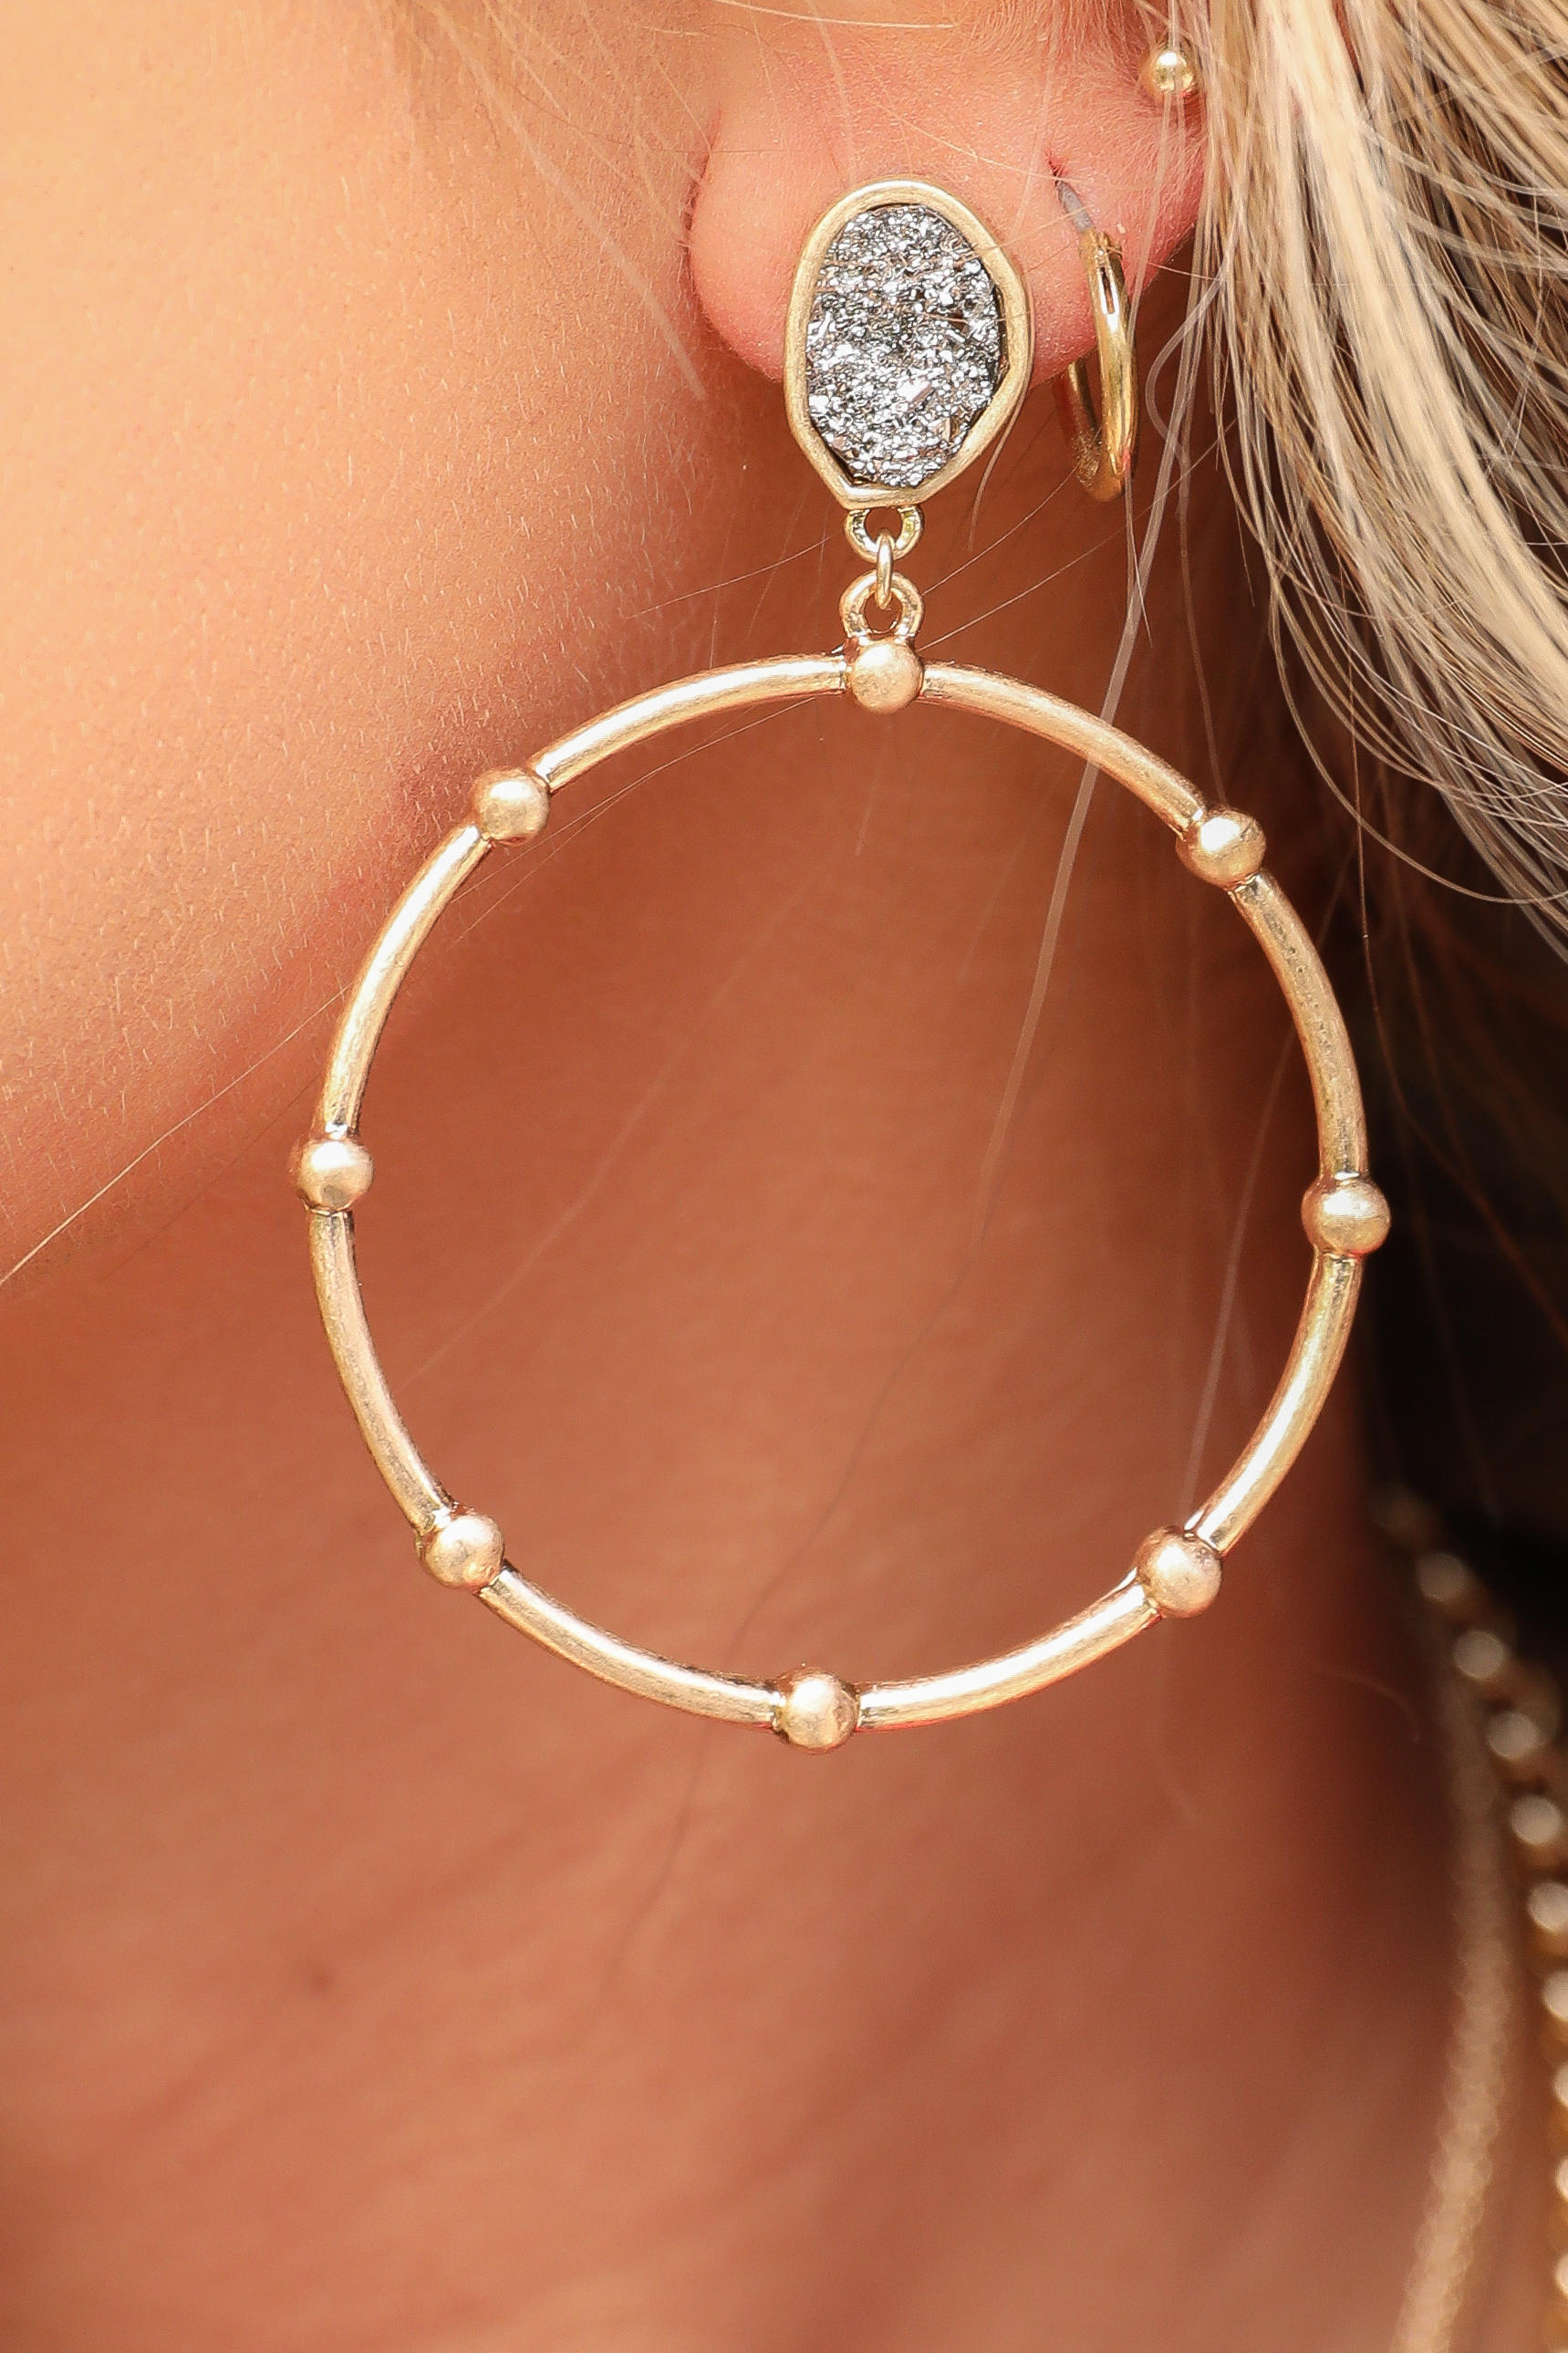 Gold Beaded Hoop Earrings with Hematite Stone Detail